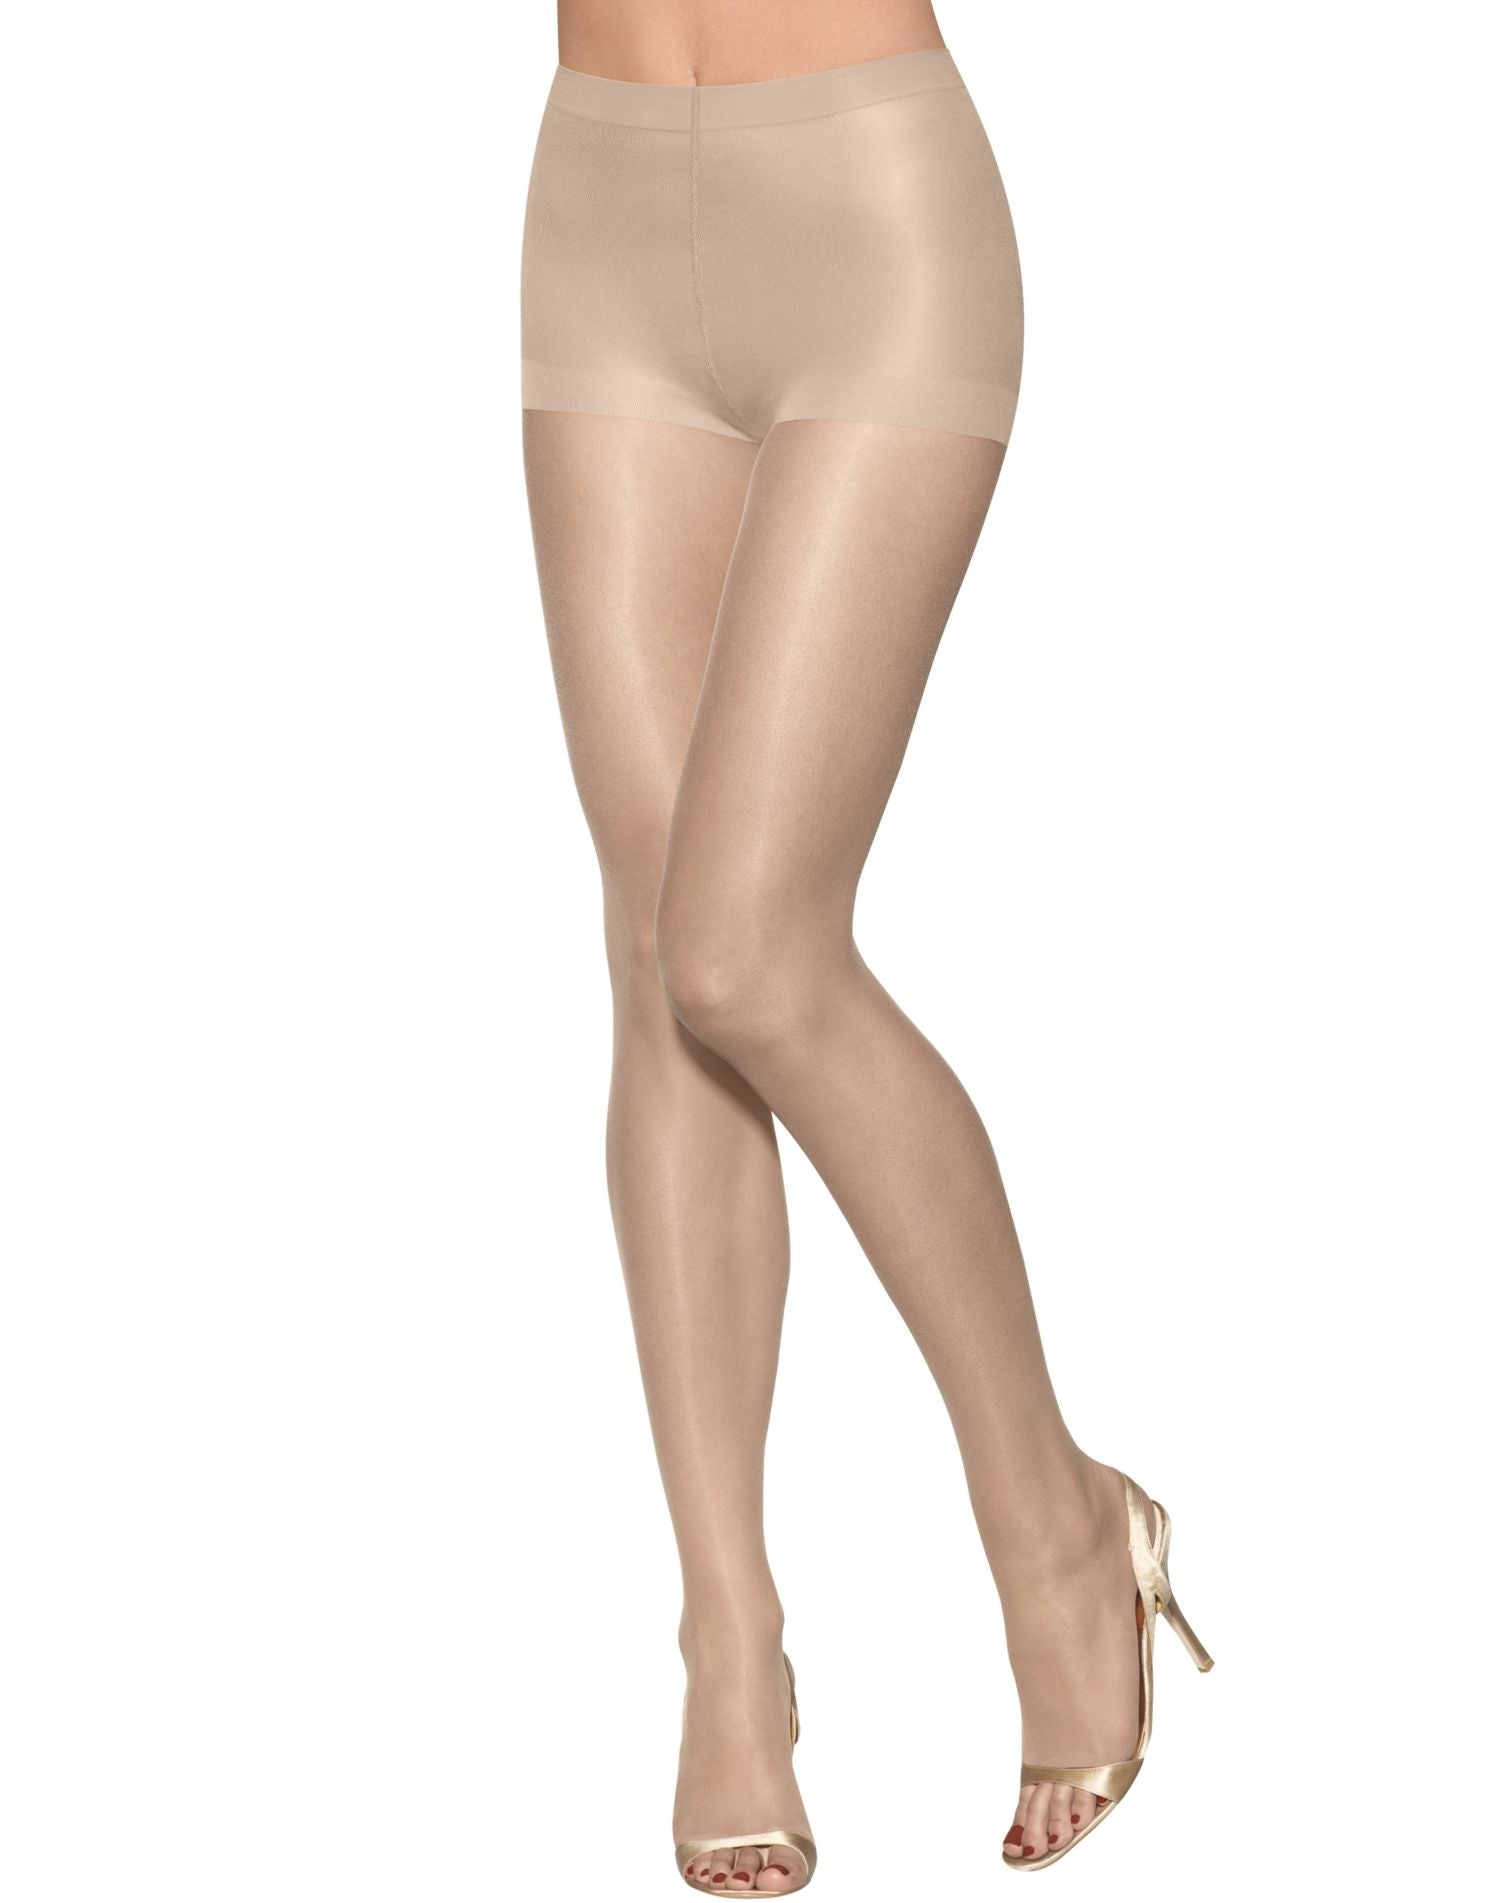 ca820529dd8 0B376 - Hanes Silk Reflections Lasting Sheer Ultra Sheer Toeless Control  Top Pantyhose 1 Pair Pack – NY Lingerie